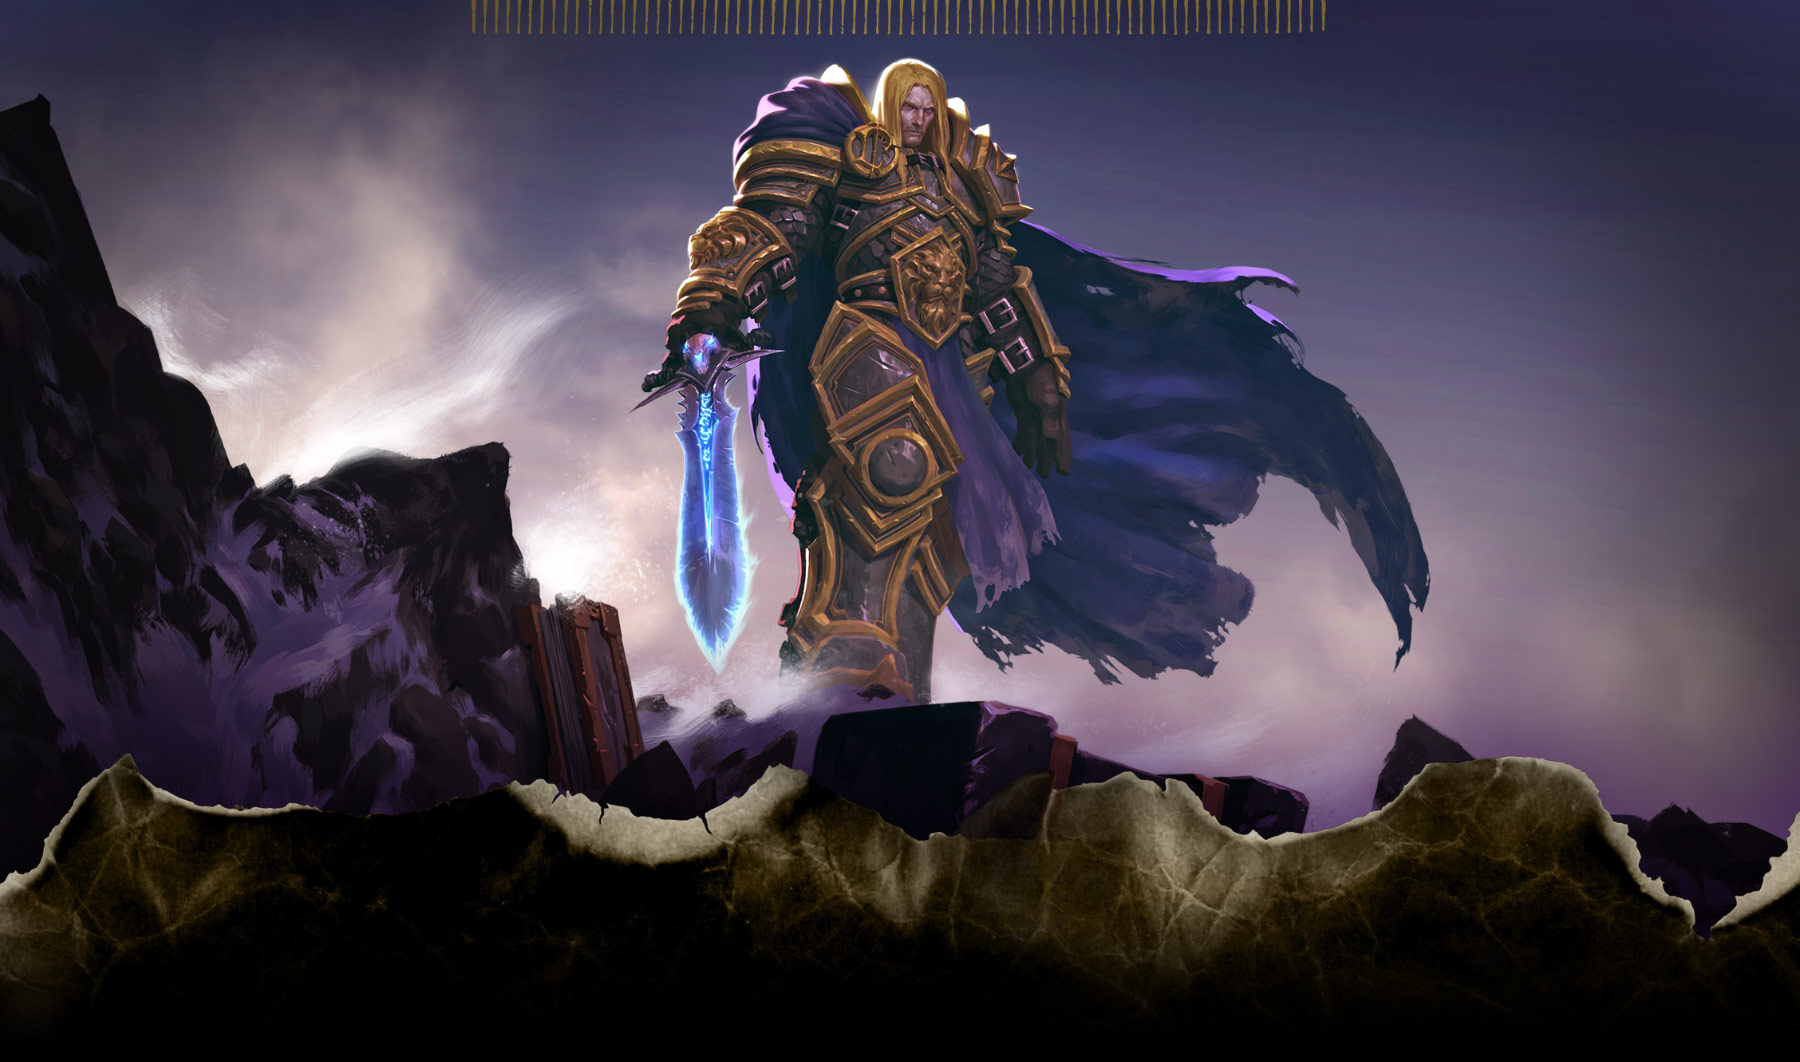 Warcraft III: Reforged Exclusive Coverage - Game Informer